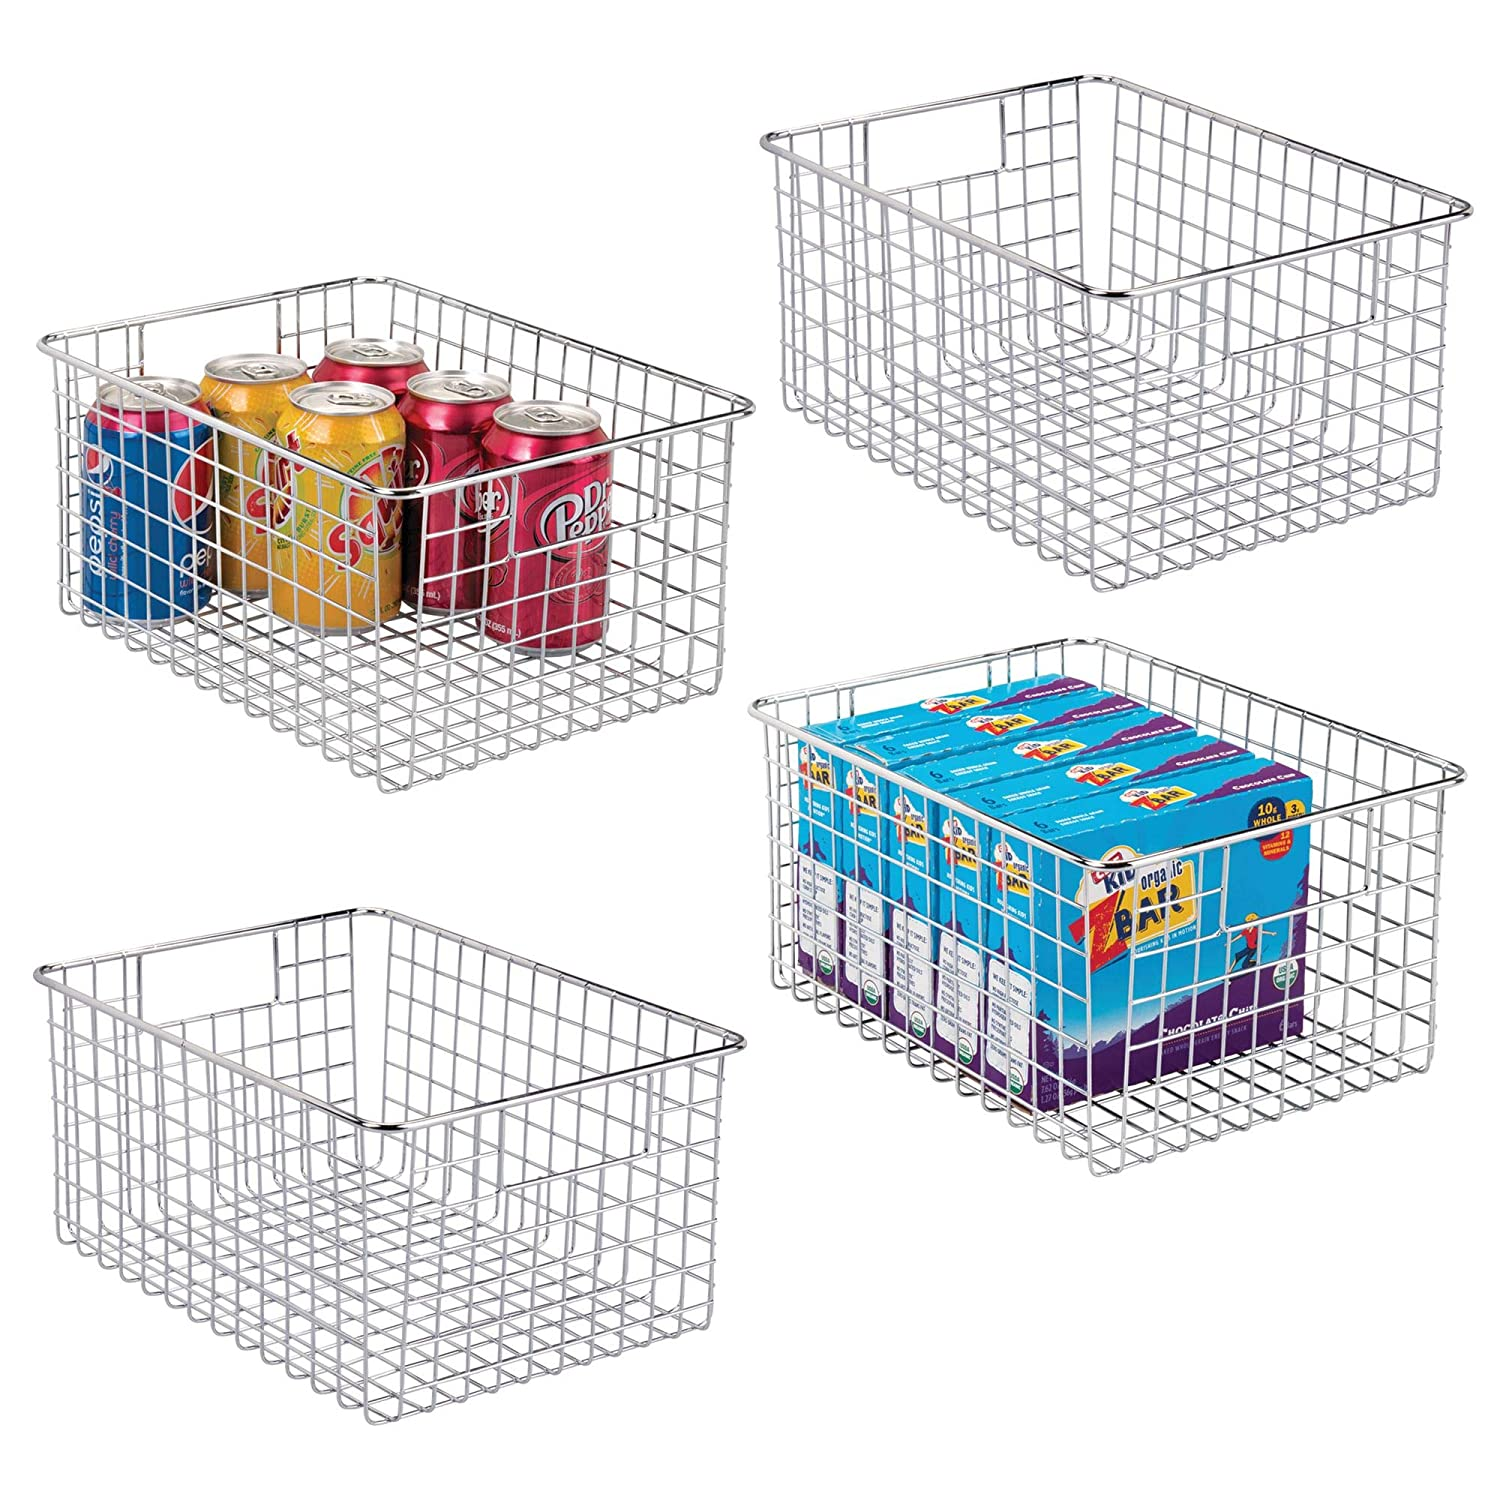 "mDesign Farmhouse Decor Metal Wire Food Storage Organizer Bin Basket with Handles - for Kitchen Cabinets, Pantry, Bathroom, Laundry Room, Closets, Garage - 12"" x 9"" x 6"" - 4 Pack - Chrome"